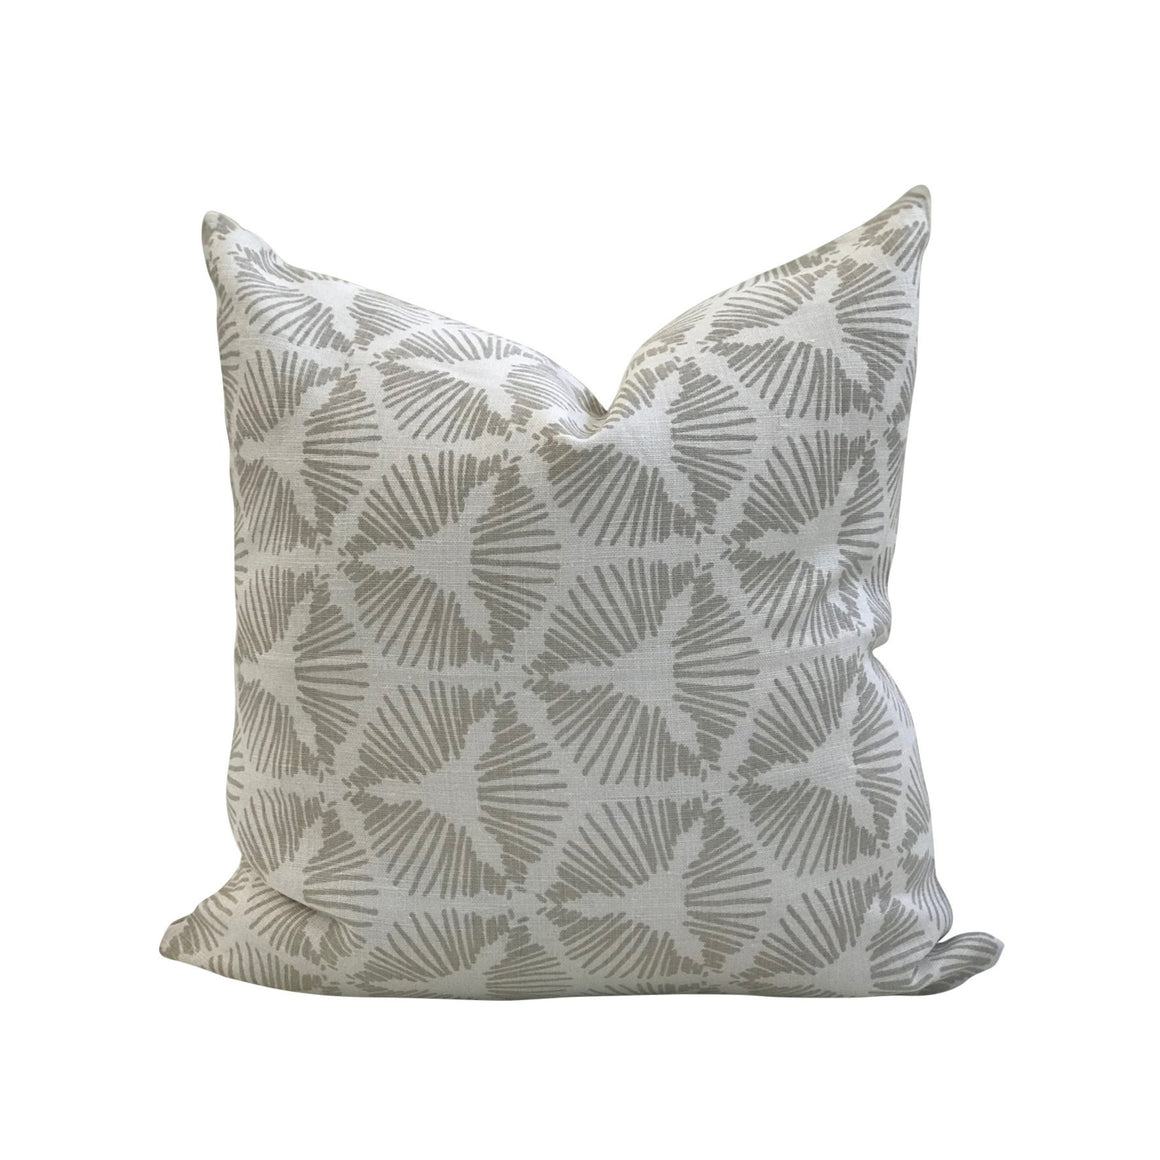 Cie pillow Heron on Oyster greige textiles linen greige design shop + interiors